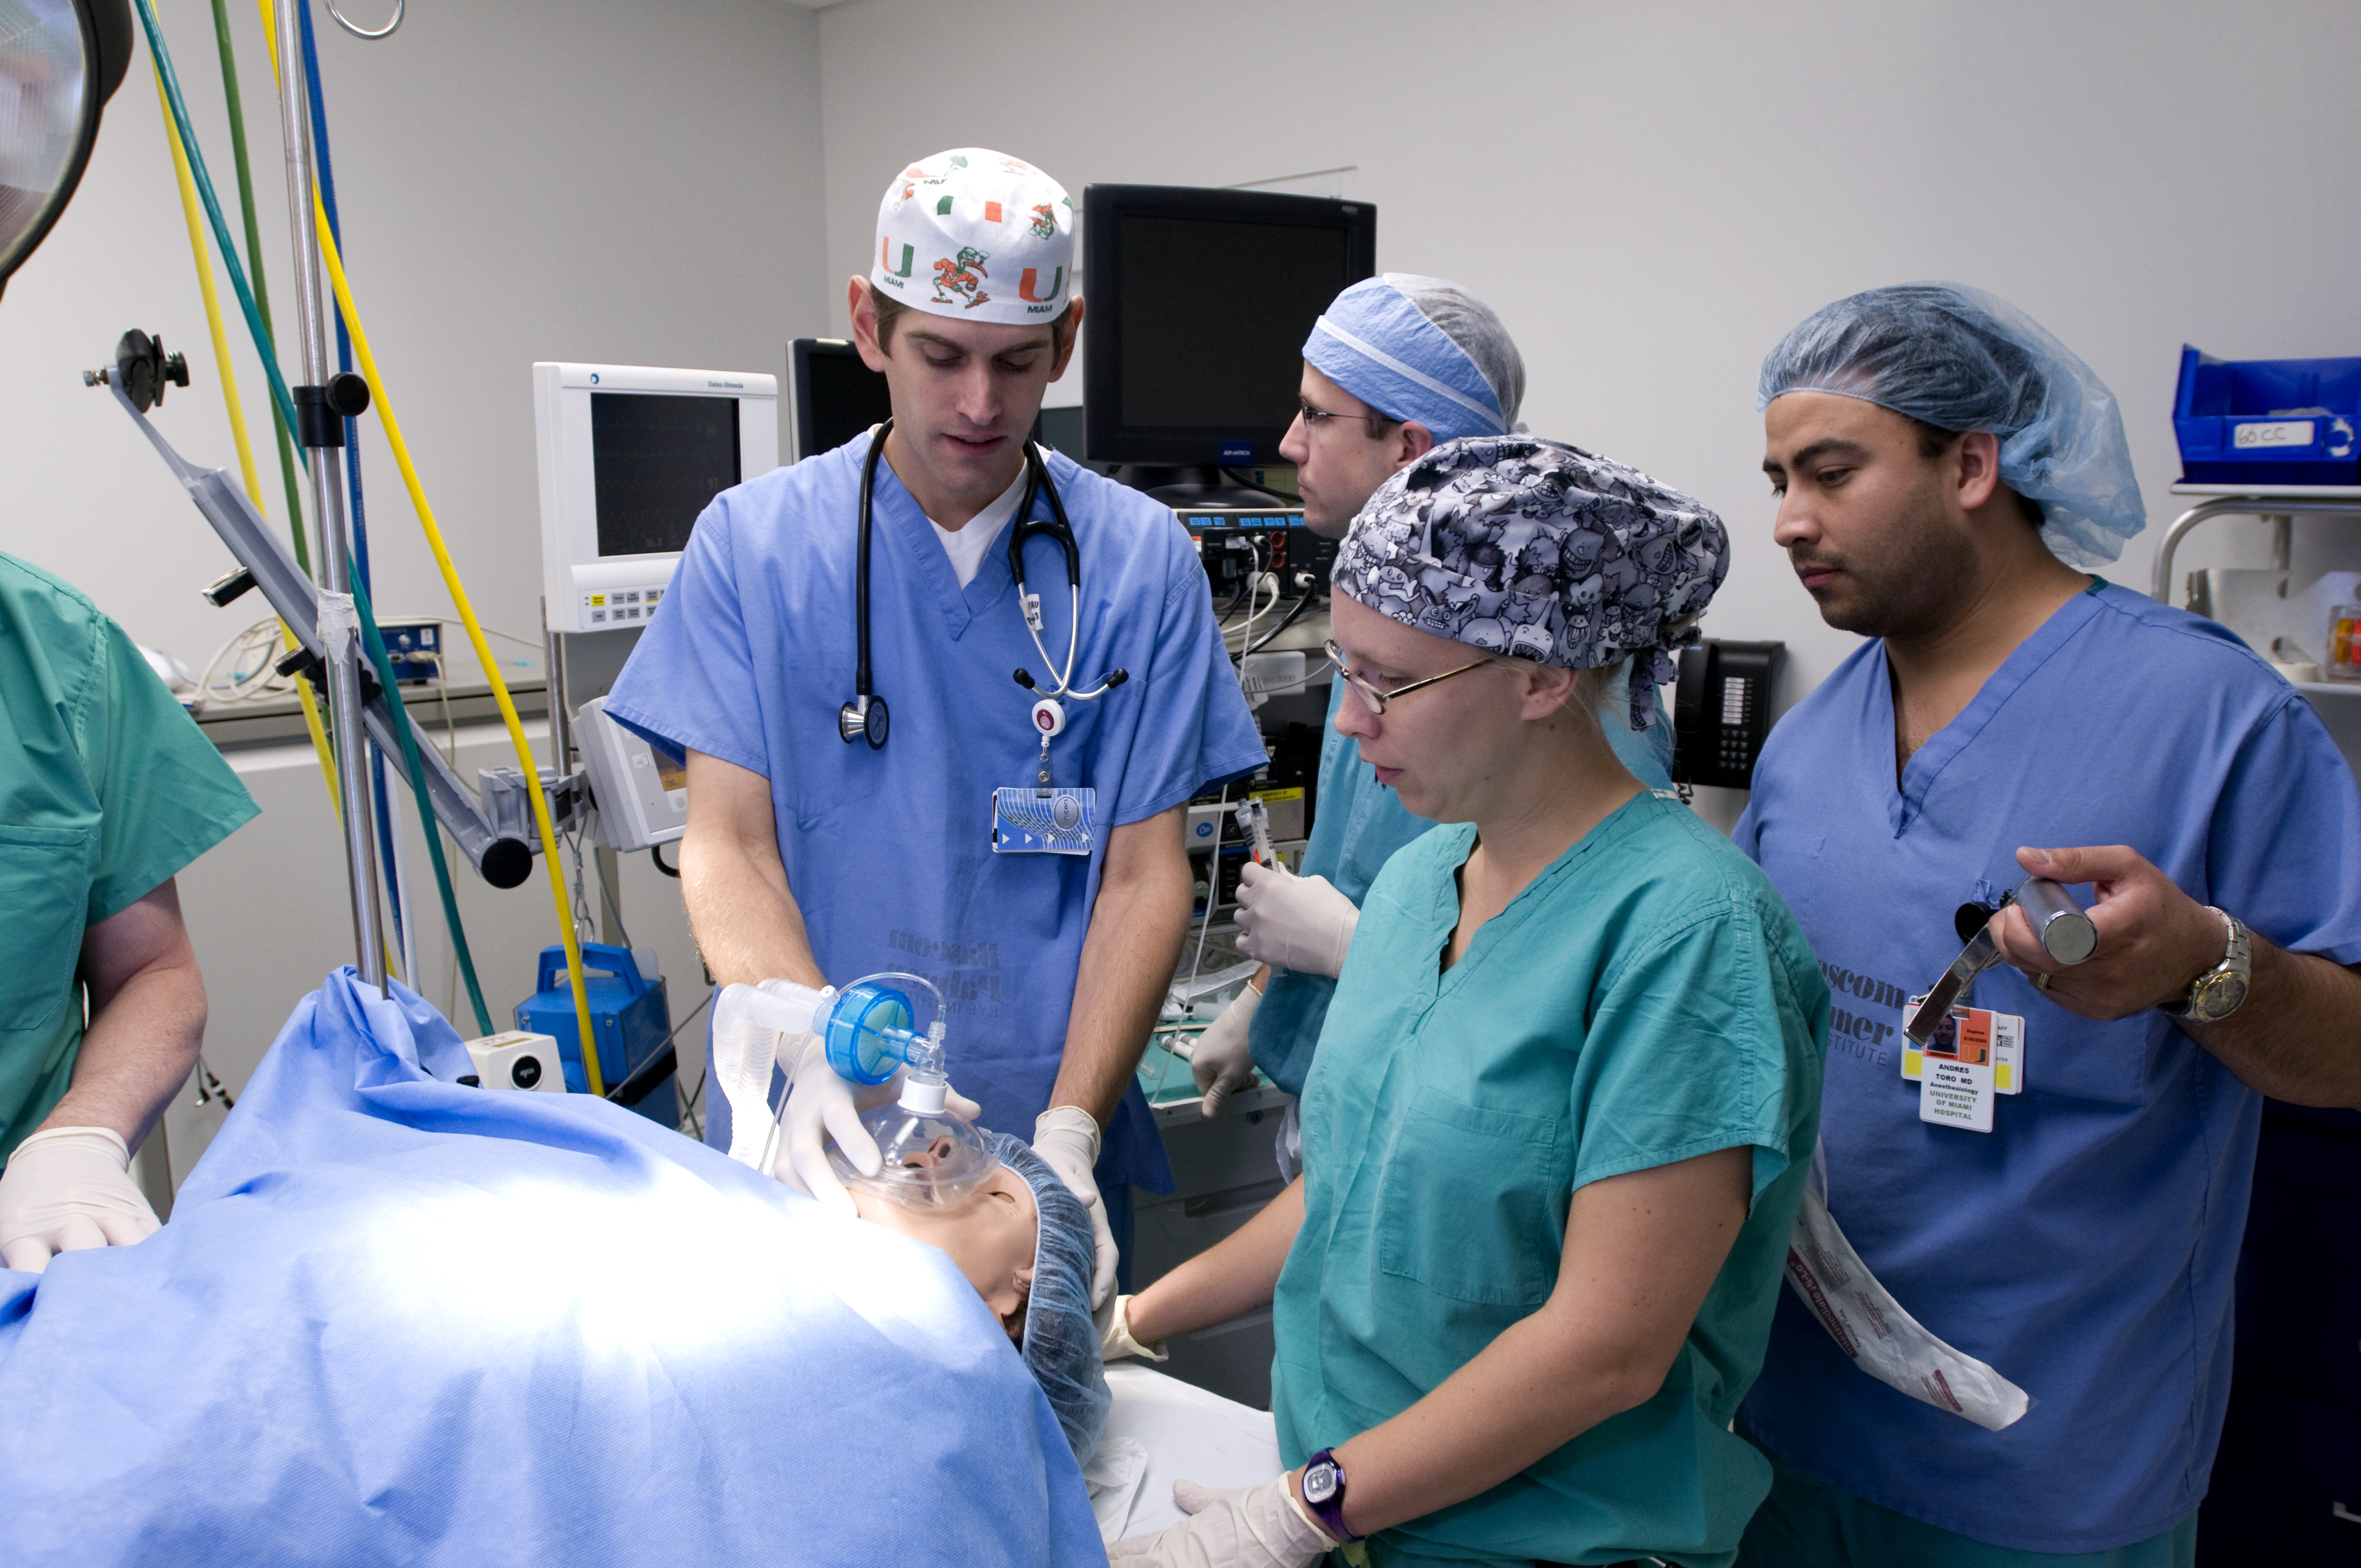 All You Need To Know About A Certified Registered Nurse Anesthetist